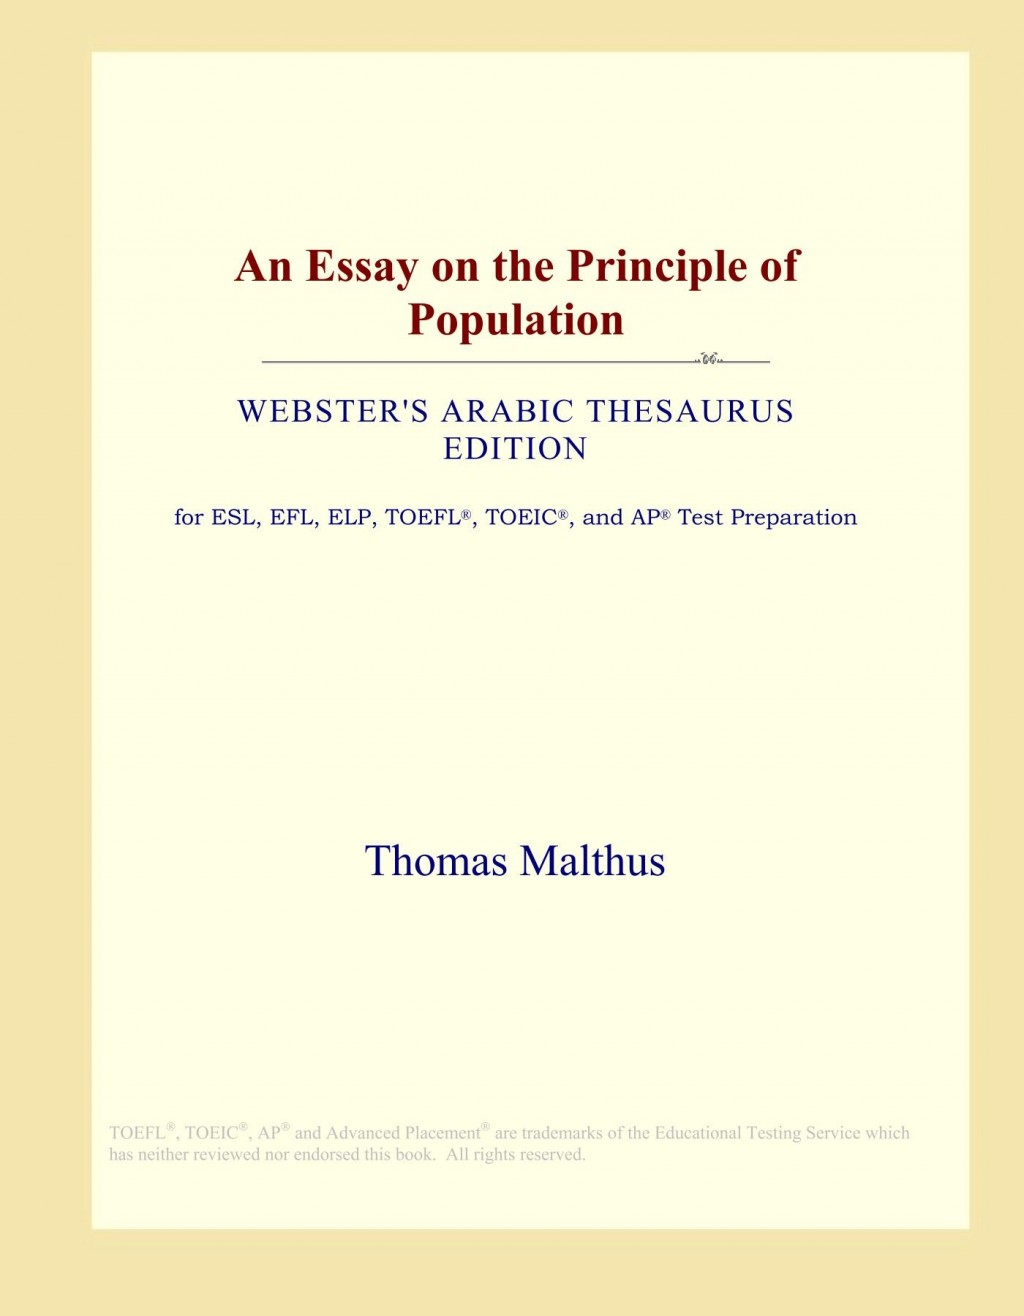 015 61groeunvgl Essay On The Principle Of Population Singular Thomas Malthus Sparknotes Advocated Ap Euro Large